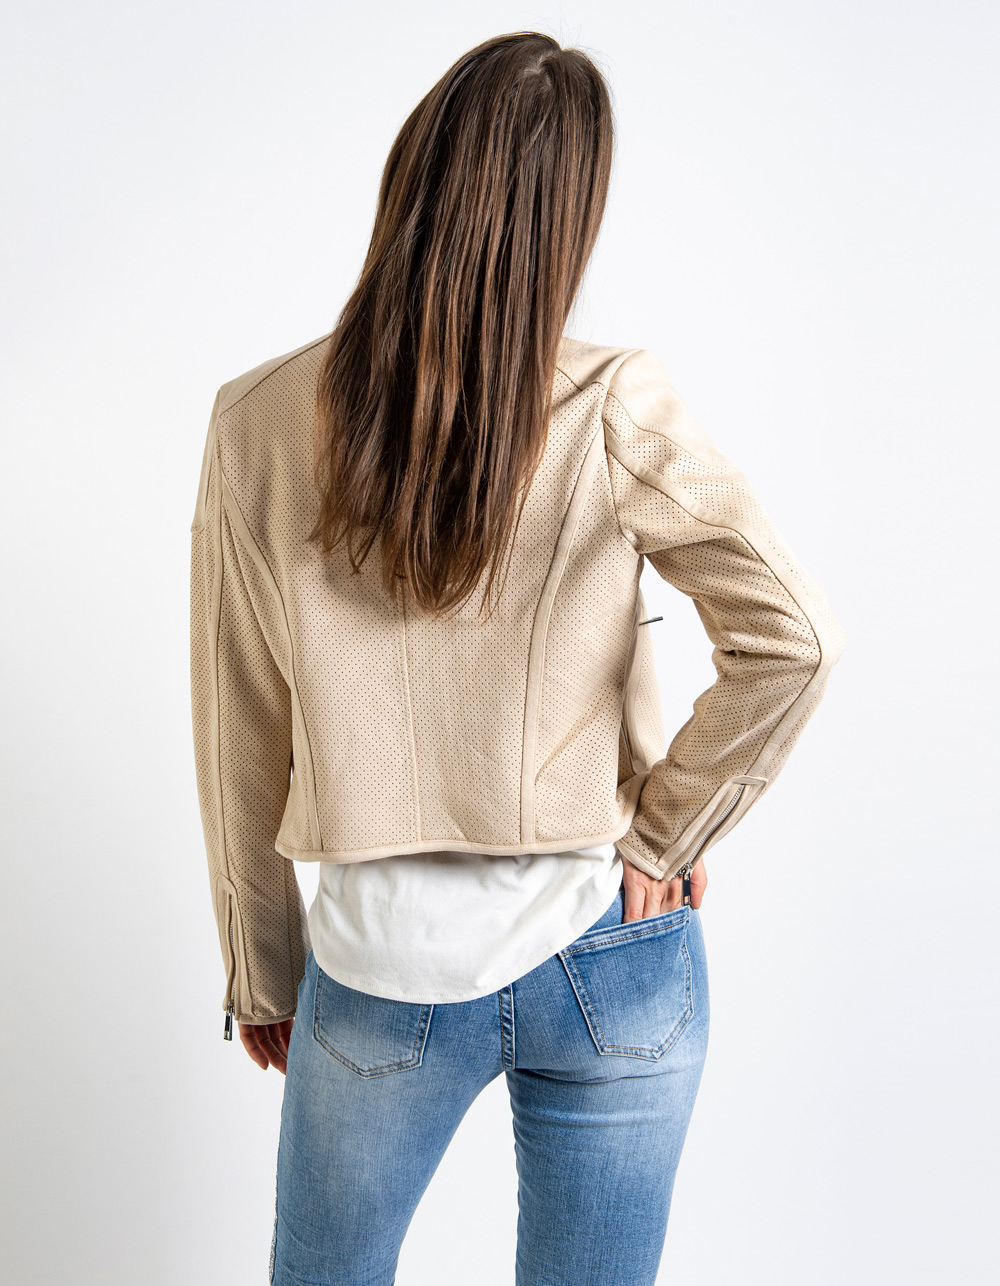 Chaqueta corta tipo antelina - Backside